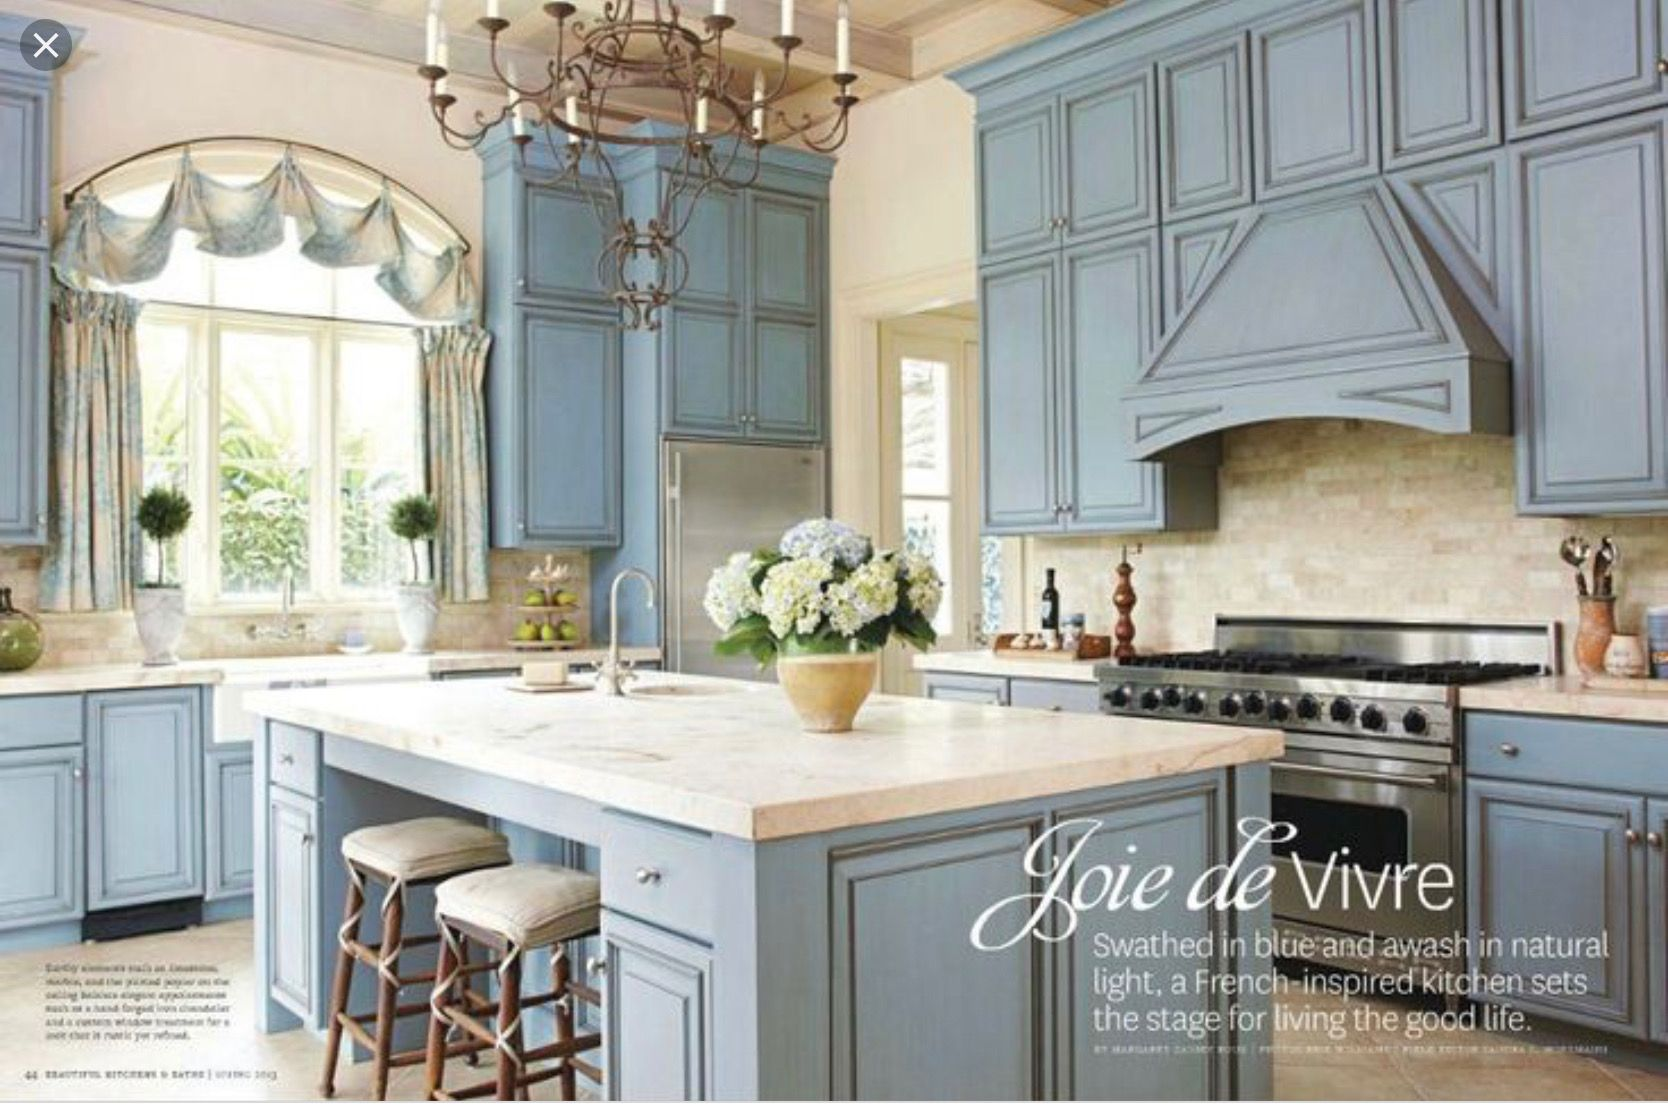 Pin By Michelle Markquart On 1130 Fairfield French Country Kitchens Blue French Country Kitchen Country Style Kitchen